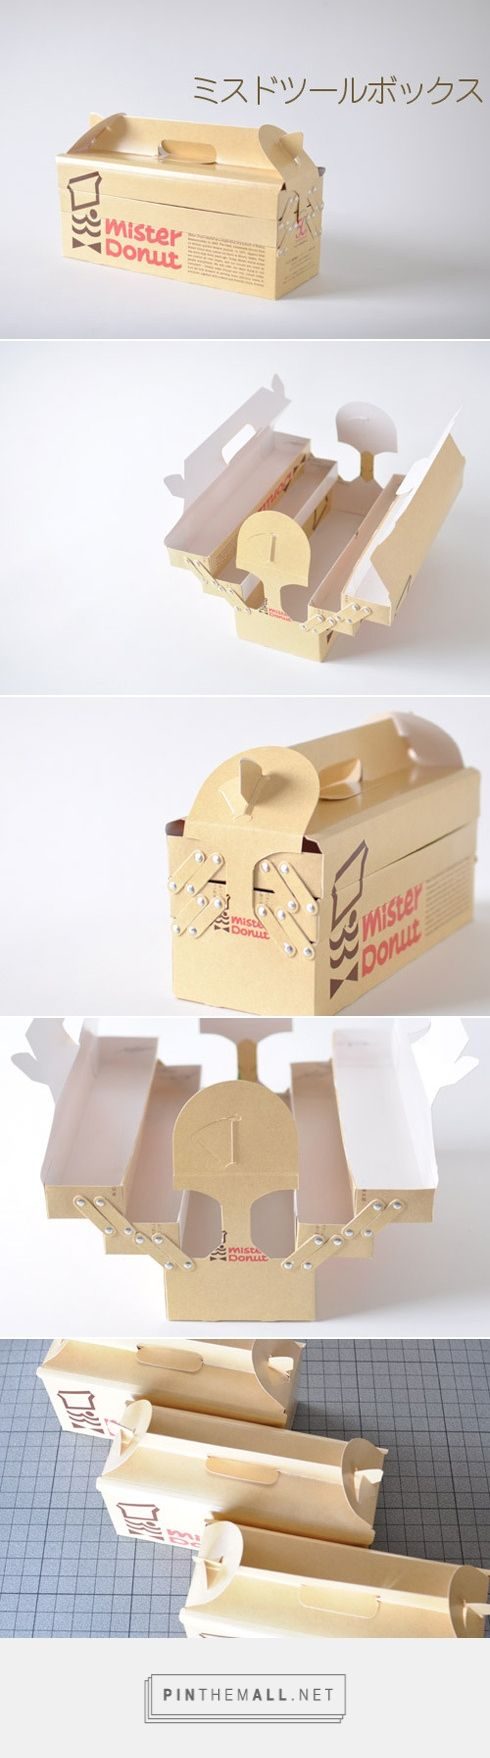 Mister Donut. Looking for packaging ideas for your business or start-up? We're here to help! Visit us at PrimeLinePkg.com for custom bags, boxes, and accessories for your shop!